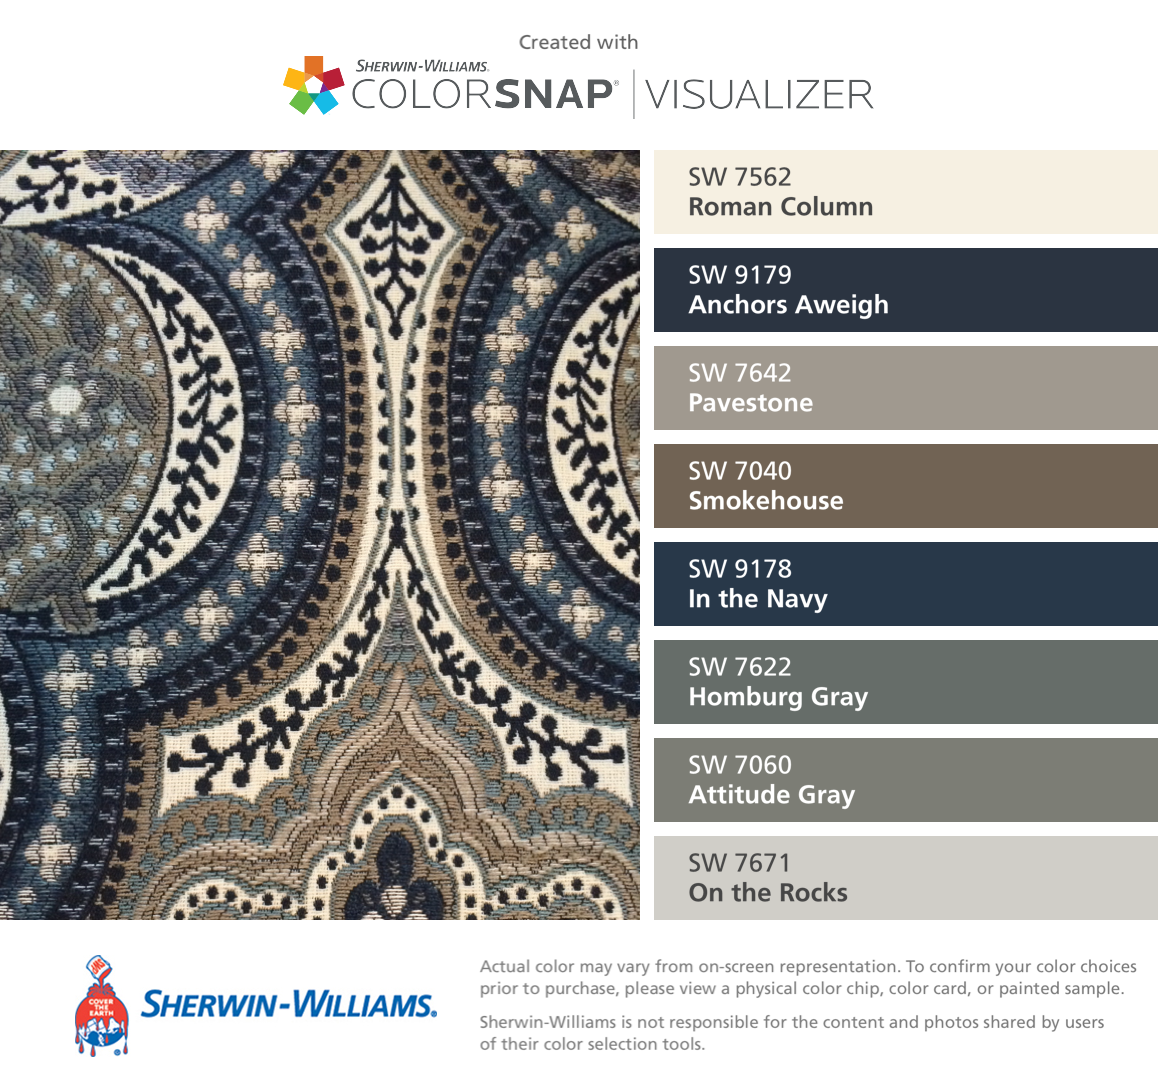 I found these colors with ColorSnap® Visualizer for iPhone by Sherwin-Williams: Roman Column (SW 7562), Anchors Aweigh (SW 9179), Pavestone (SW 7642), Smokehouse (SW 7040), In the Navy (SW 9178), Homburg Gray (SW 7622), Attitude Gray (SW 7060), On the Rocks (SW 7671).